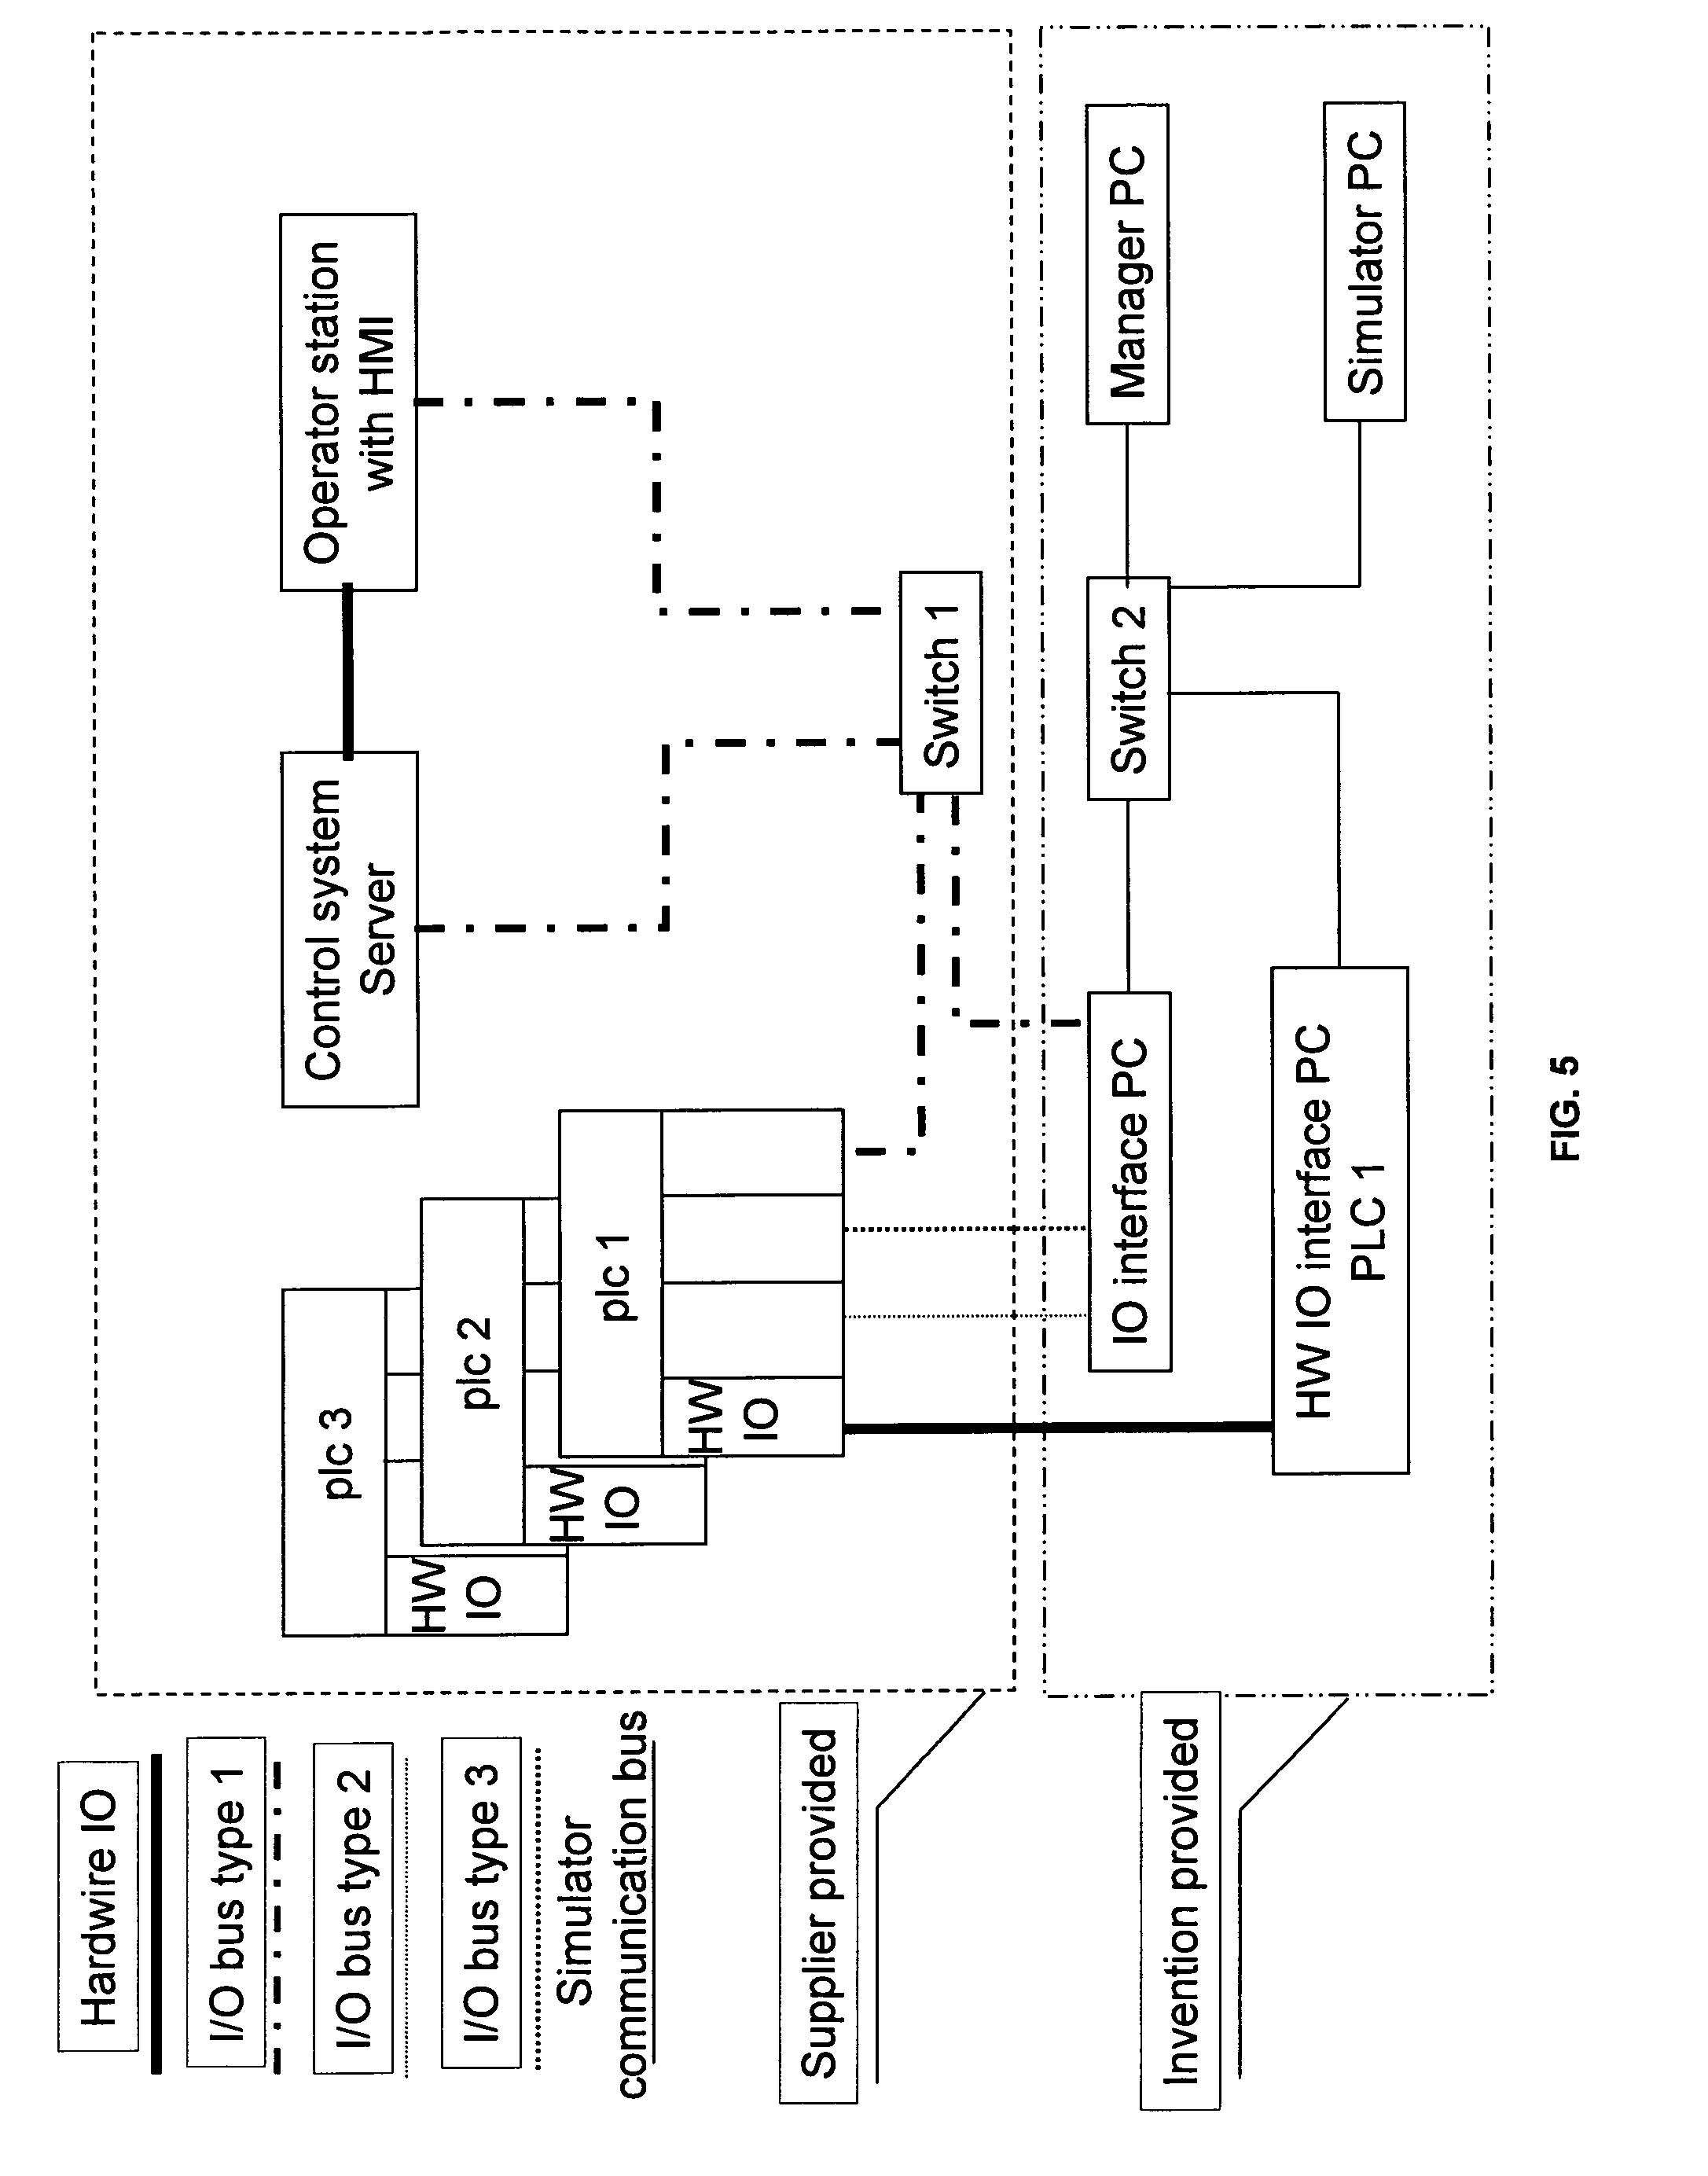 US20100193245A1 20100805 D00005 patent us20100193245 system and method for testing drilling pms4 power management system wiring diagram at fashall.co